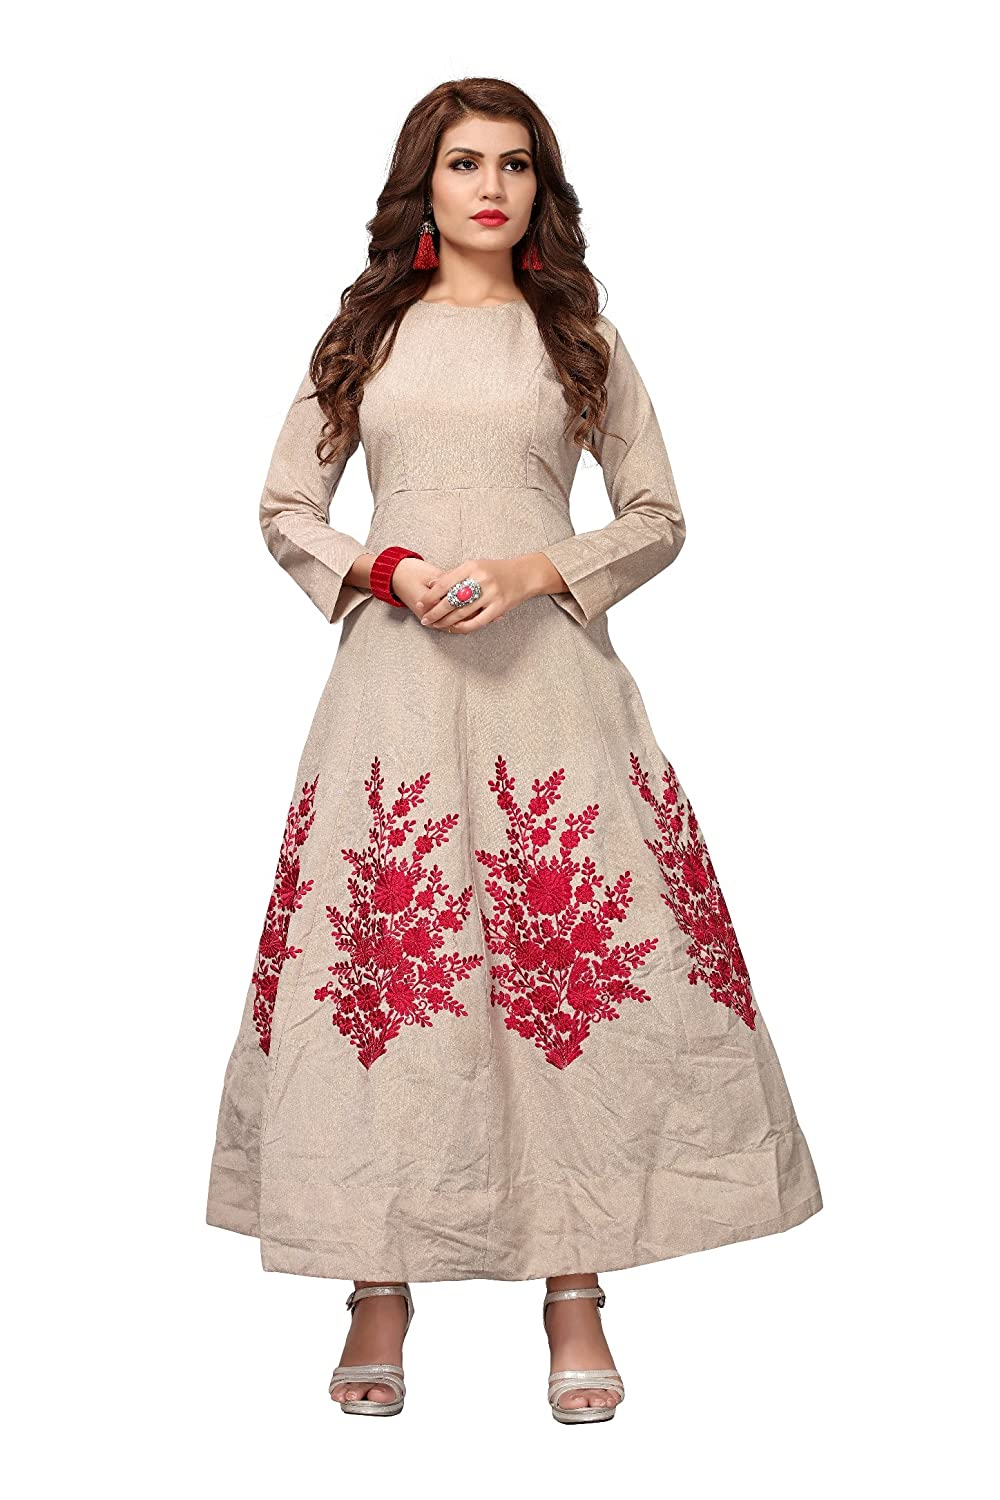 STELLACOUTURE Designer Indian Fashion Embroidered Anarkali Gown Party Wear